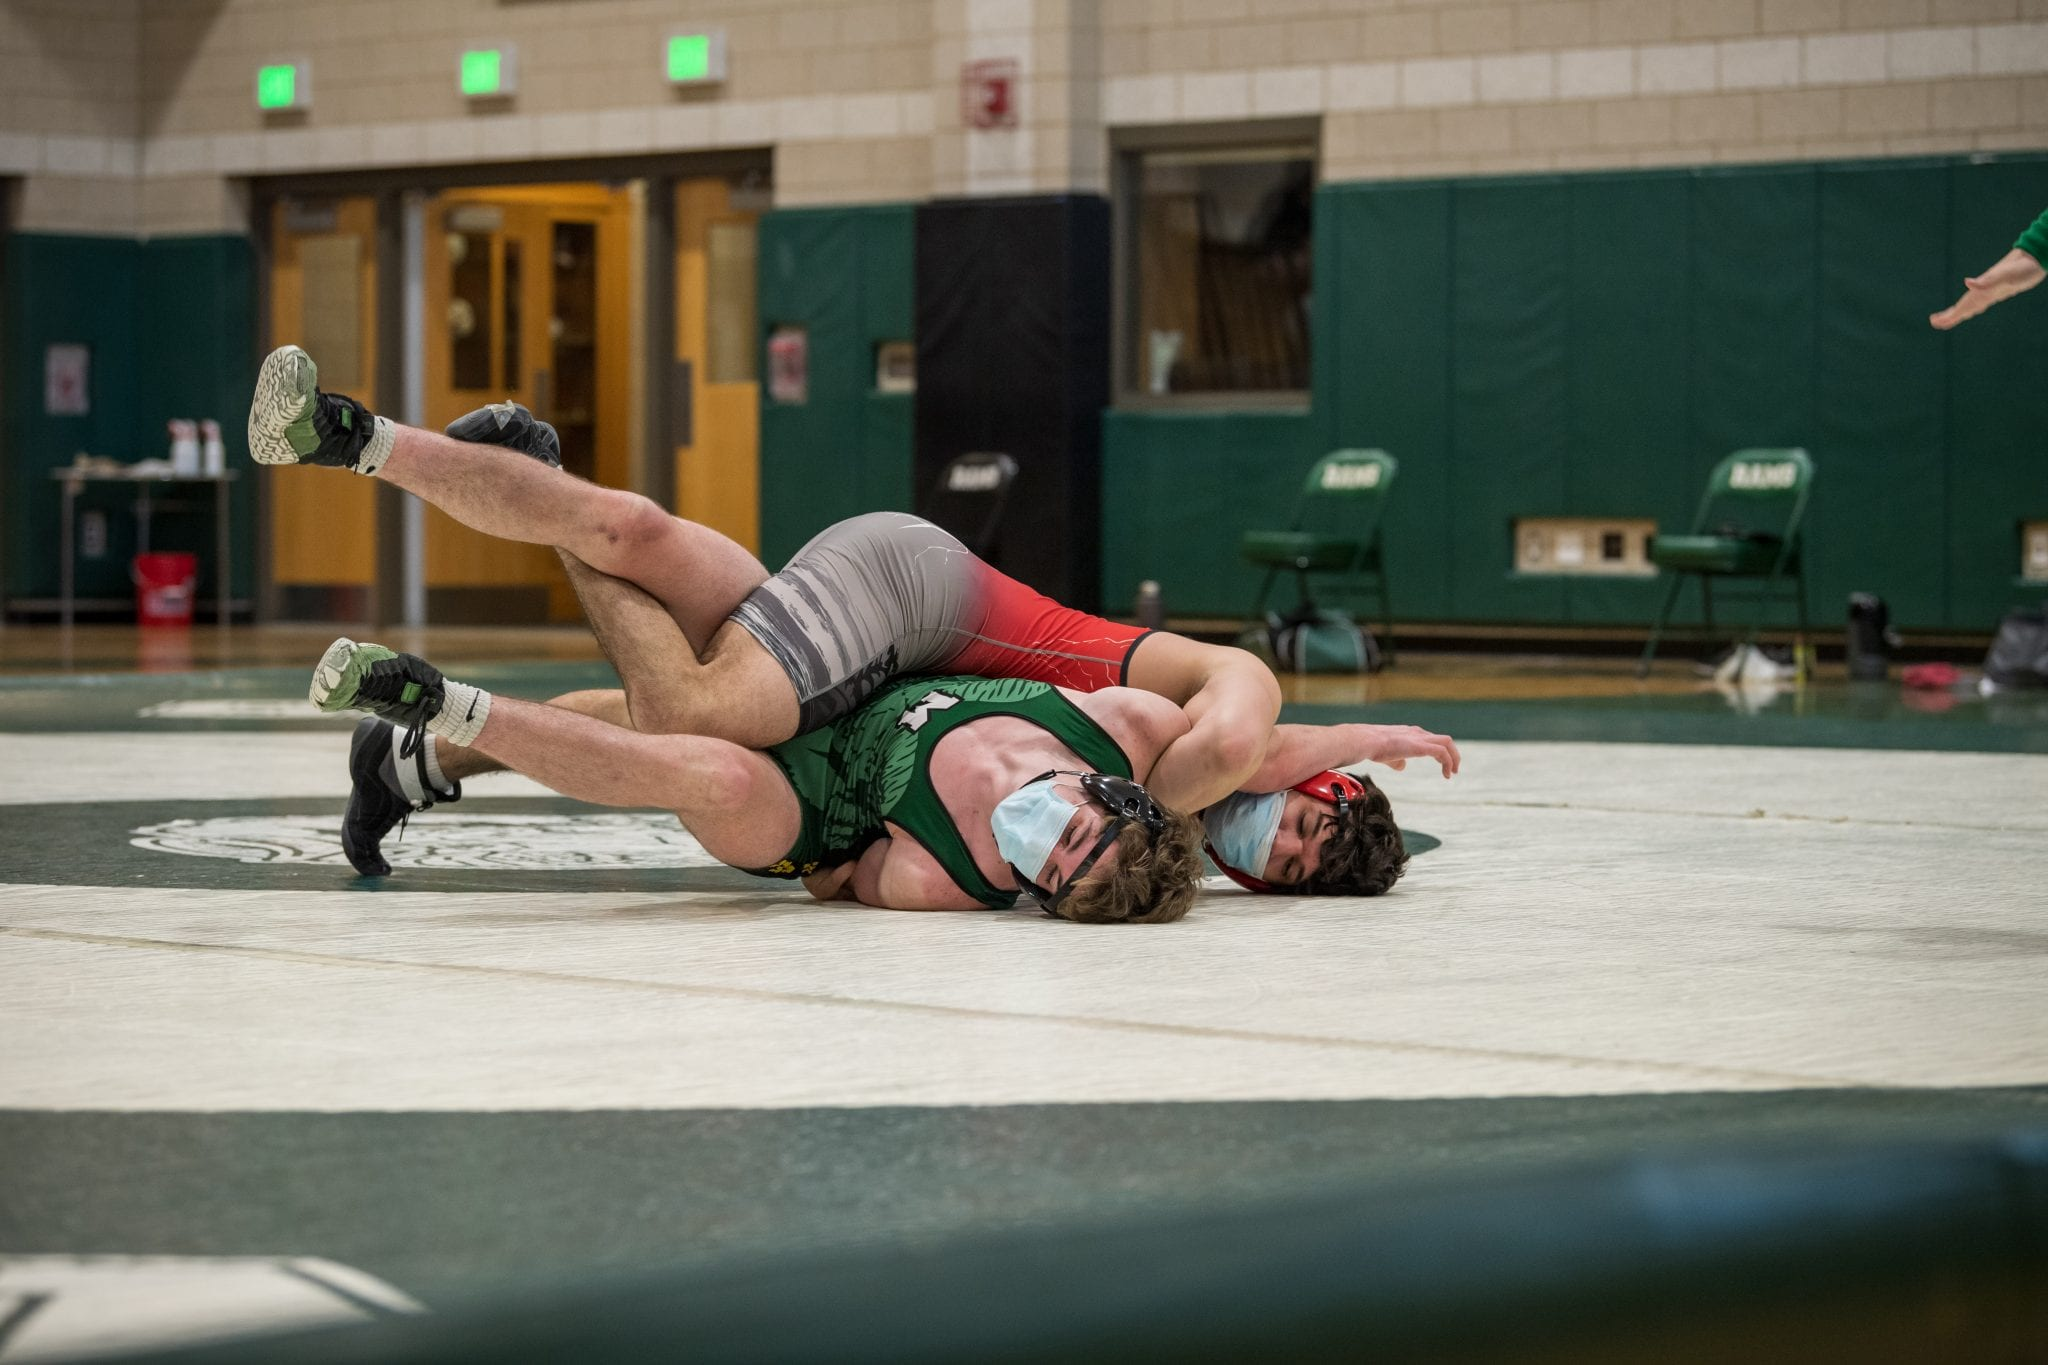 Senior captain Joe Wiley (170) attempting to pin his opponent.  (Photo by Fotique.)